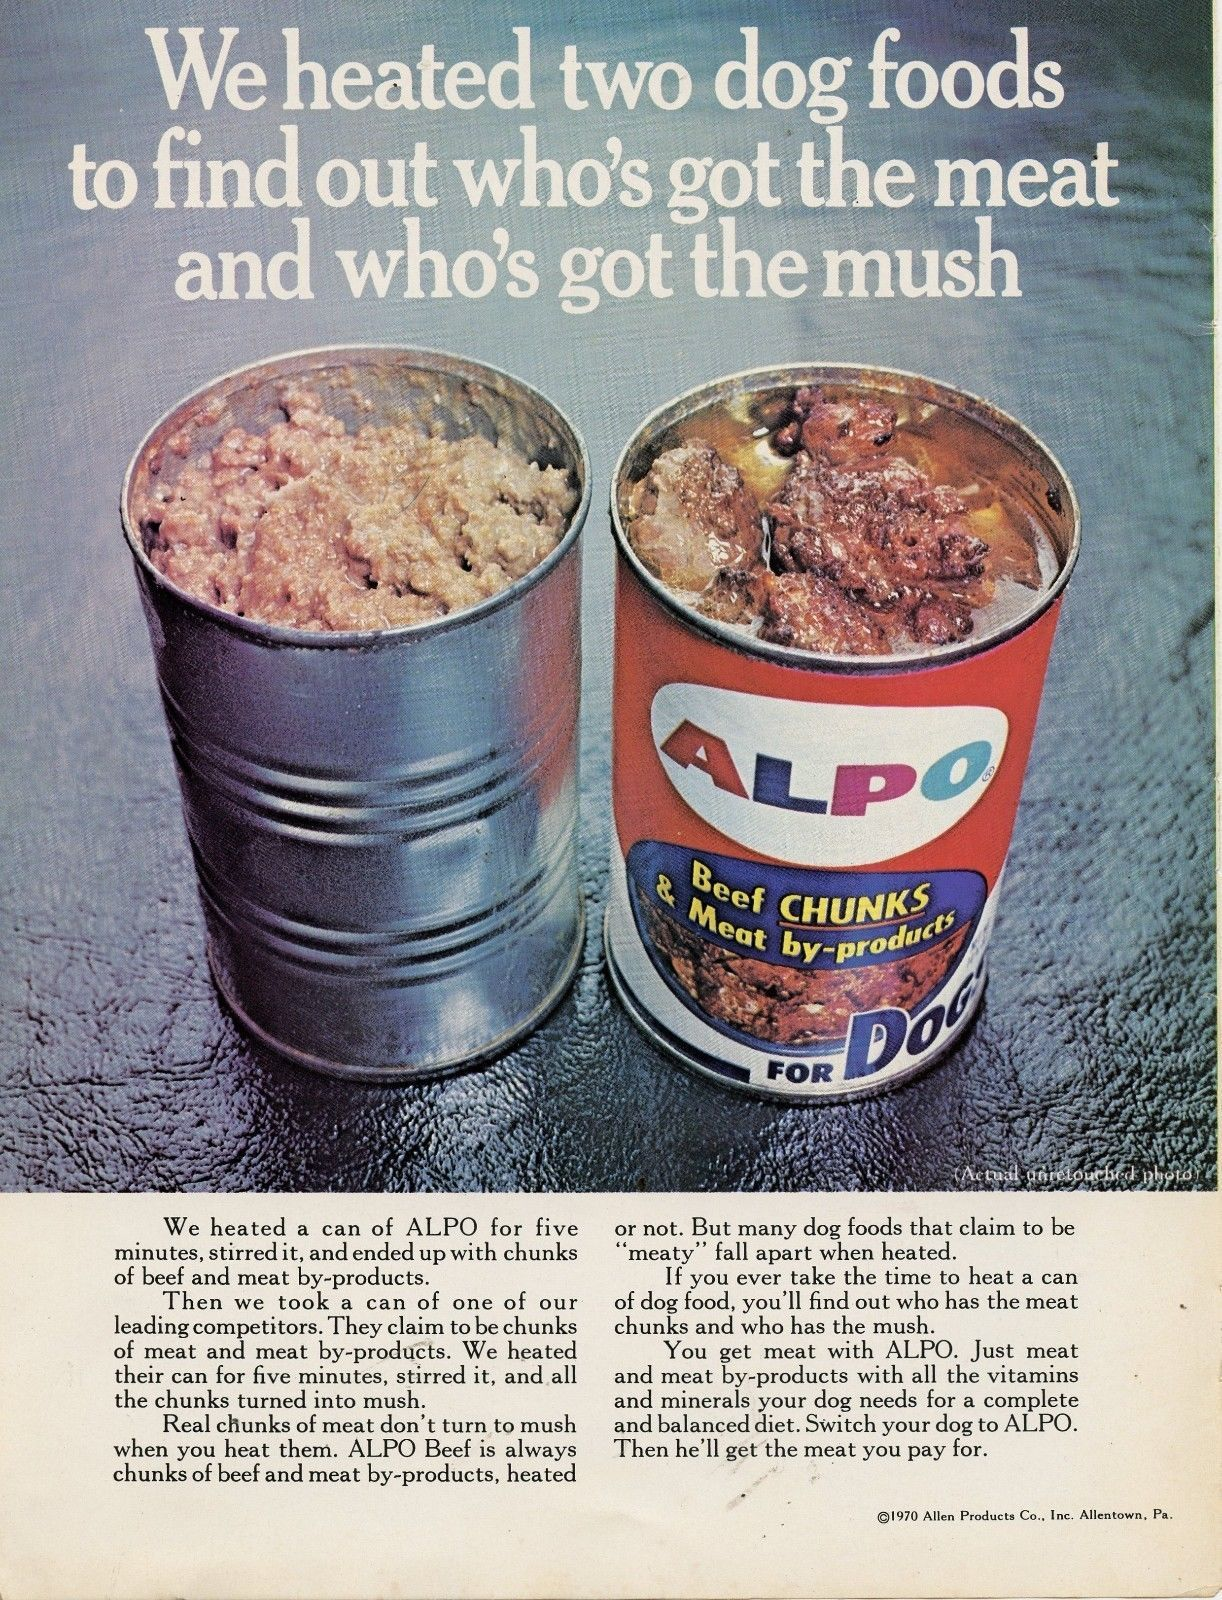 Alpo Dog Food, 1970 | Dog food recipes, Food, Alpo dog food